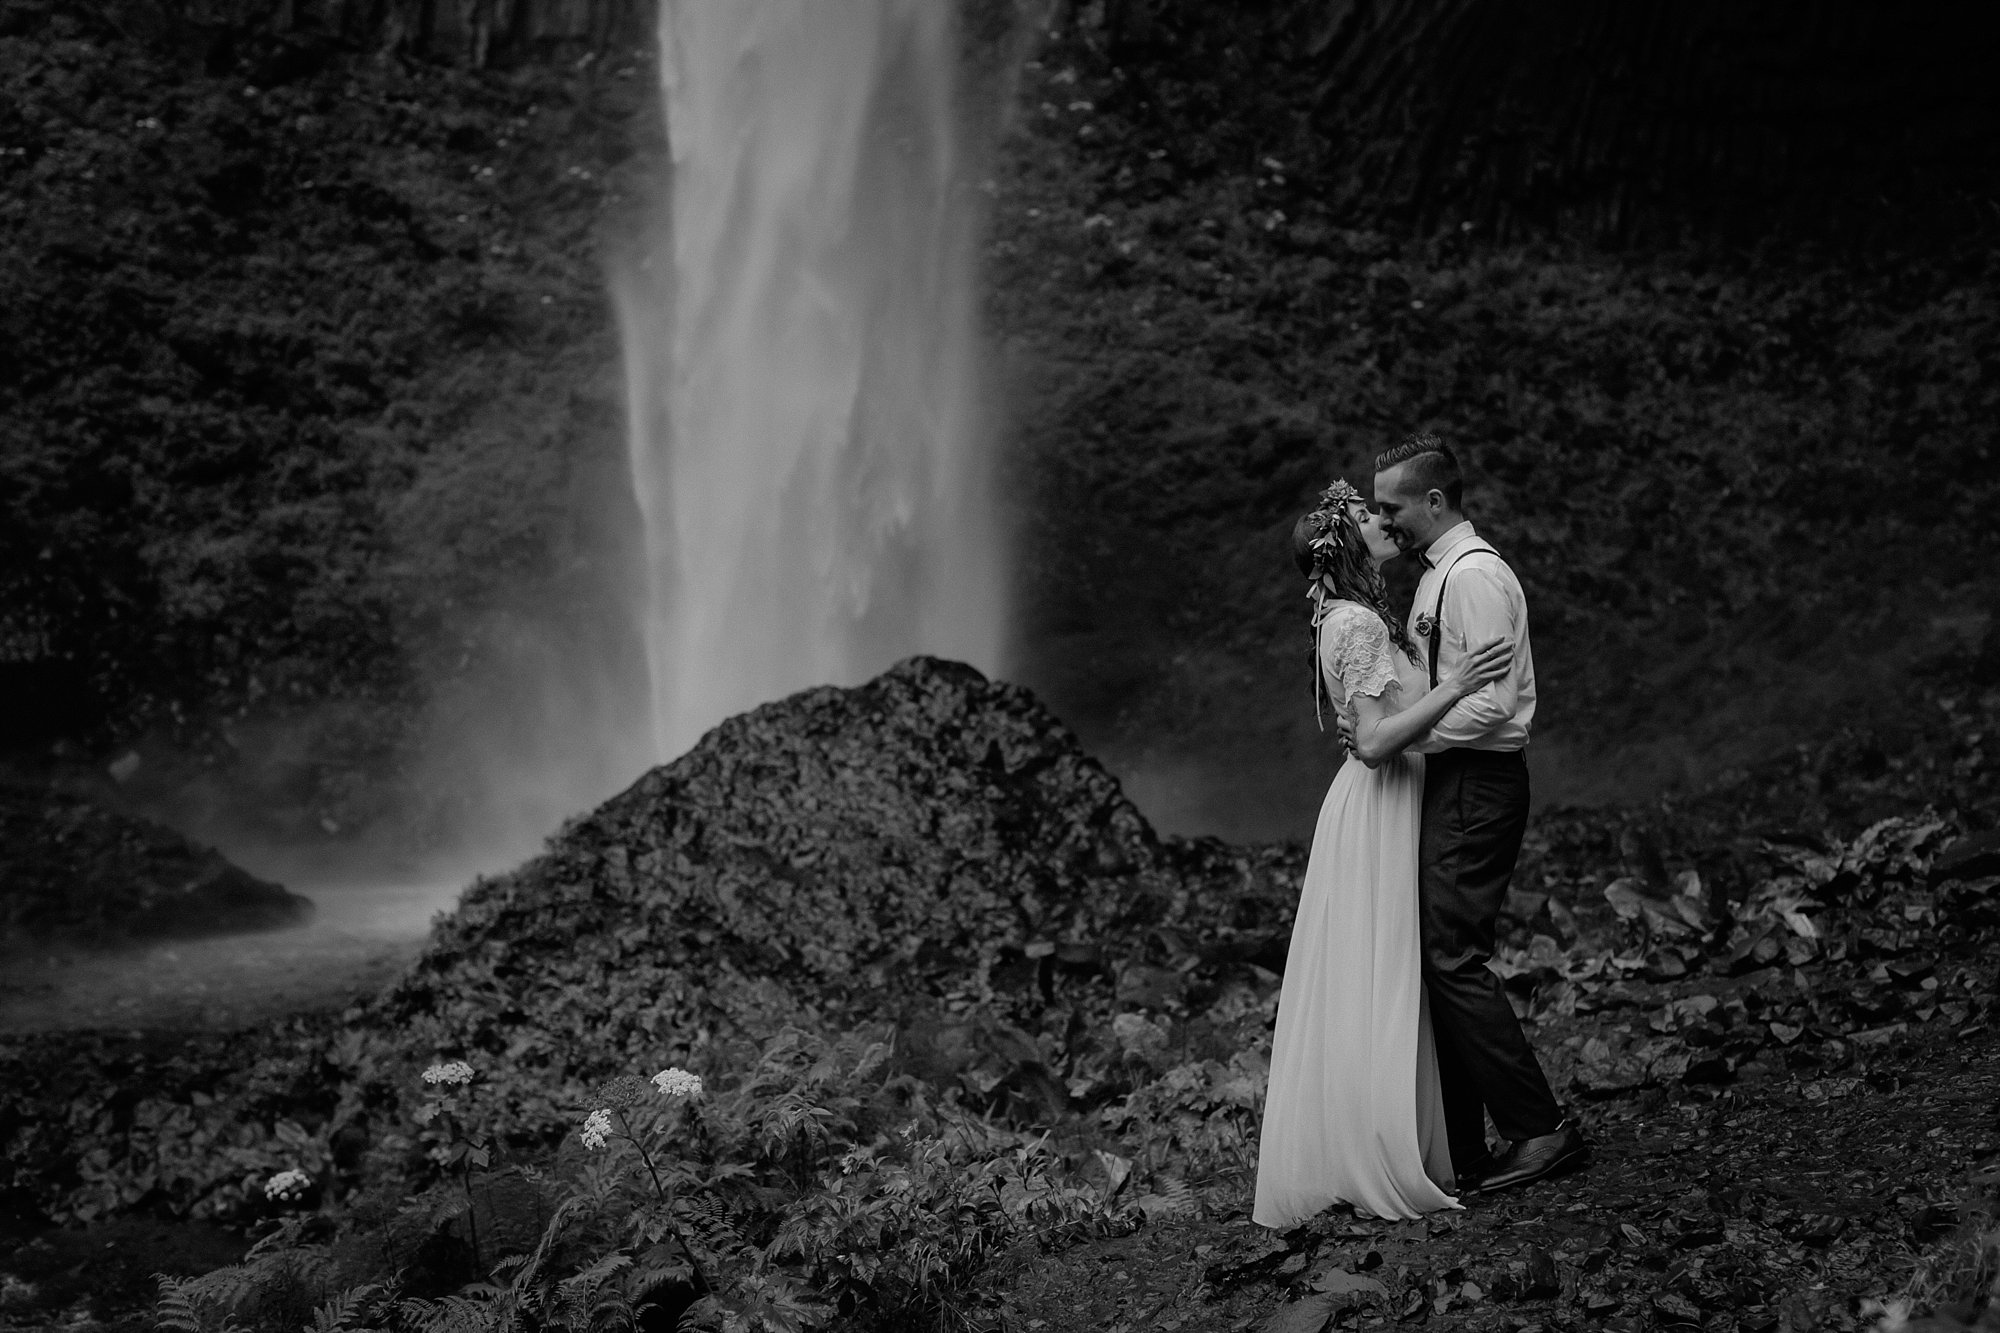 The bride and groom kiss in front of a waterfall.